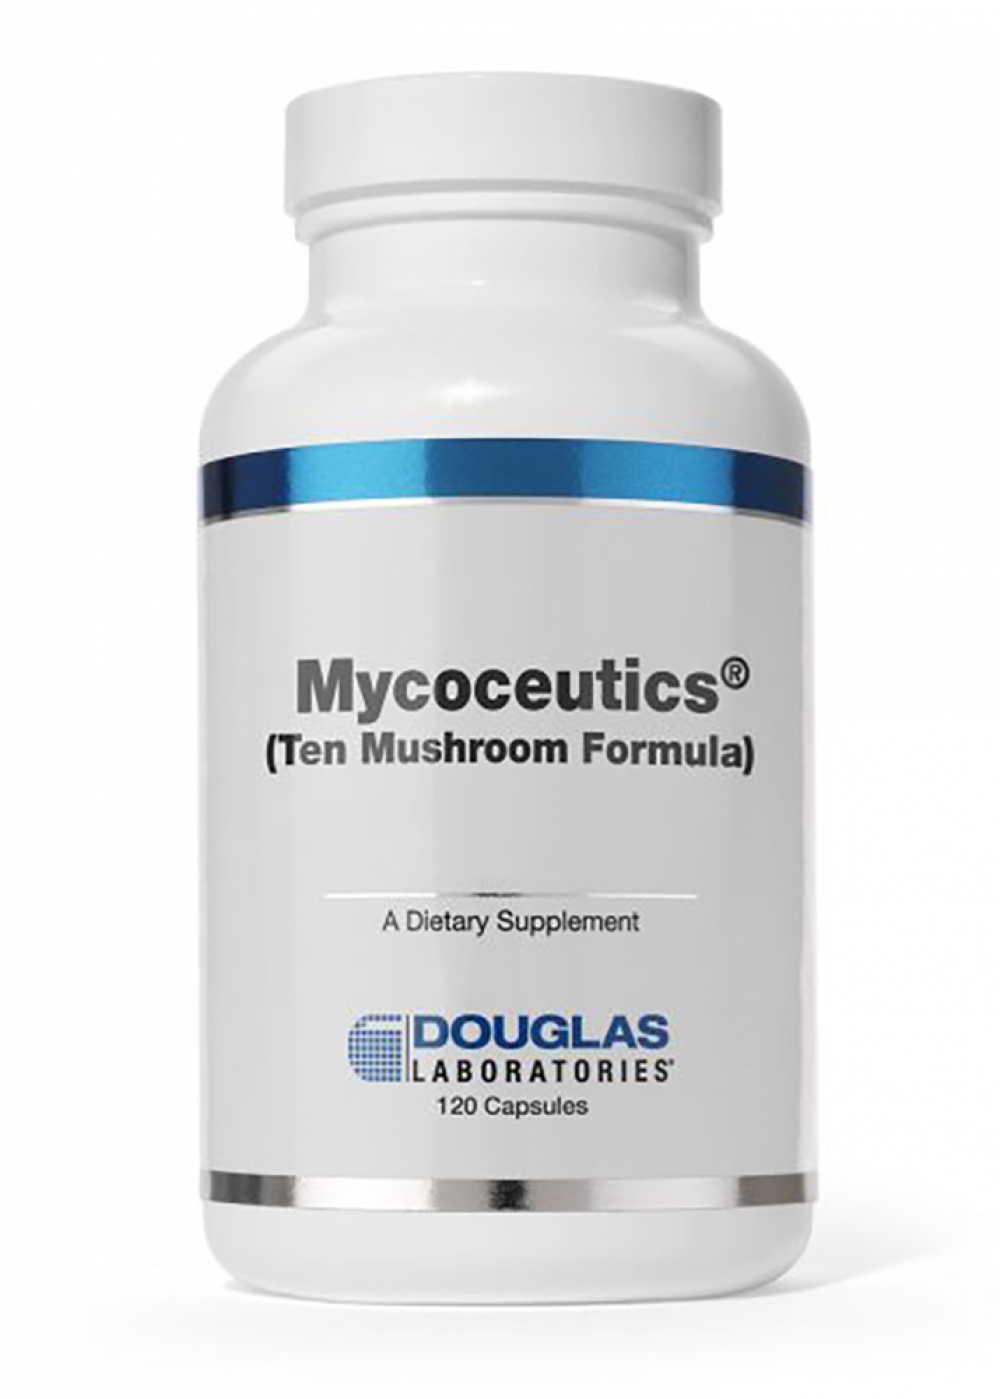 Douglas Laboratories USA Mycoceutics® (Heilpilze +Beta 1,3 Glucan) 120 Kapseln